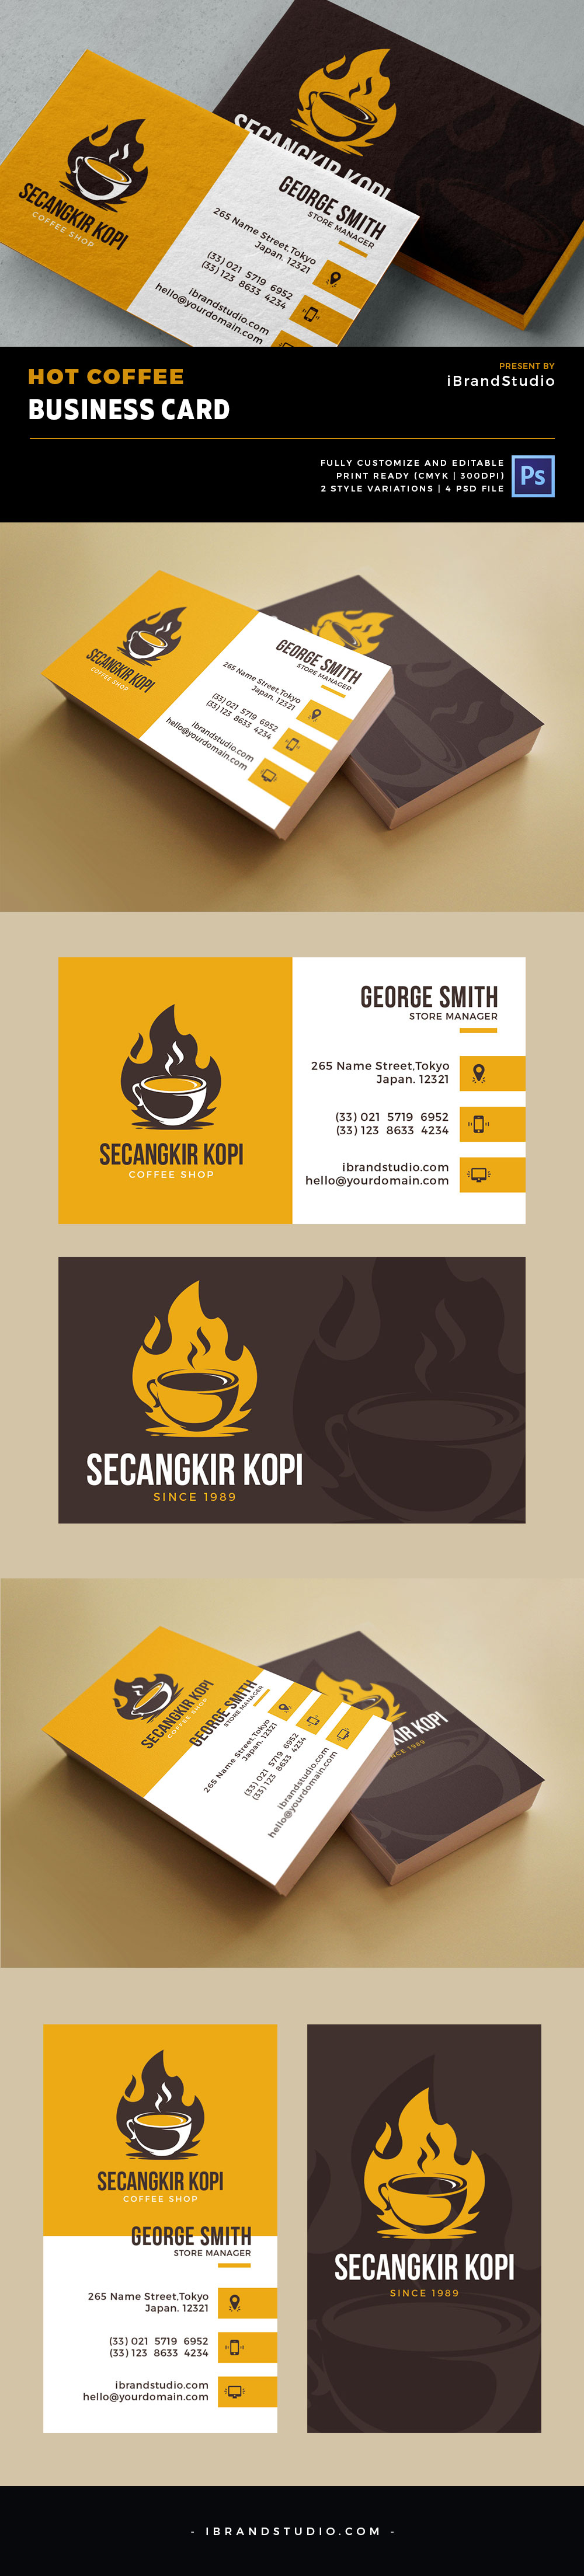 Free Hot Coffee Business Card PSD Template